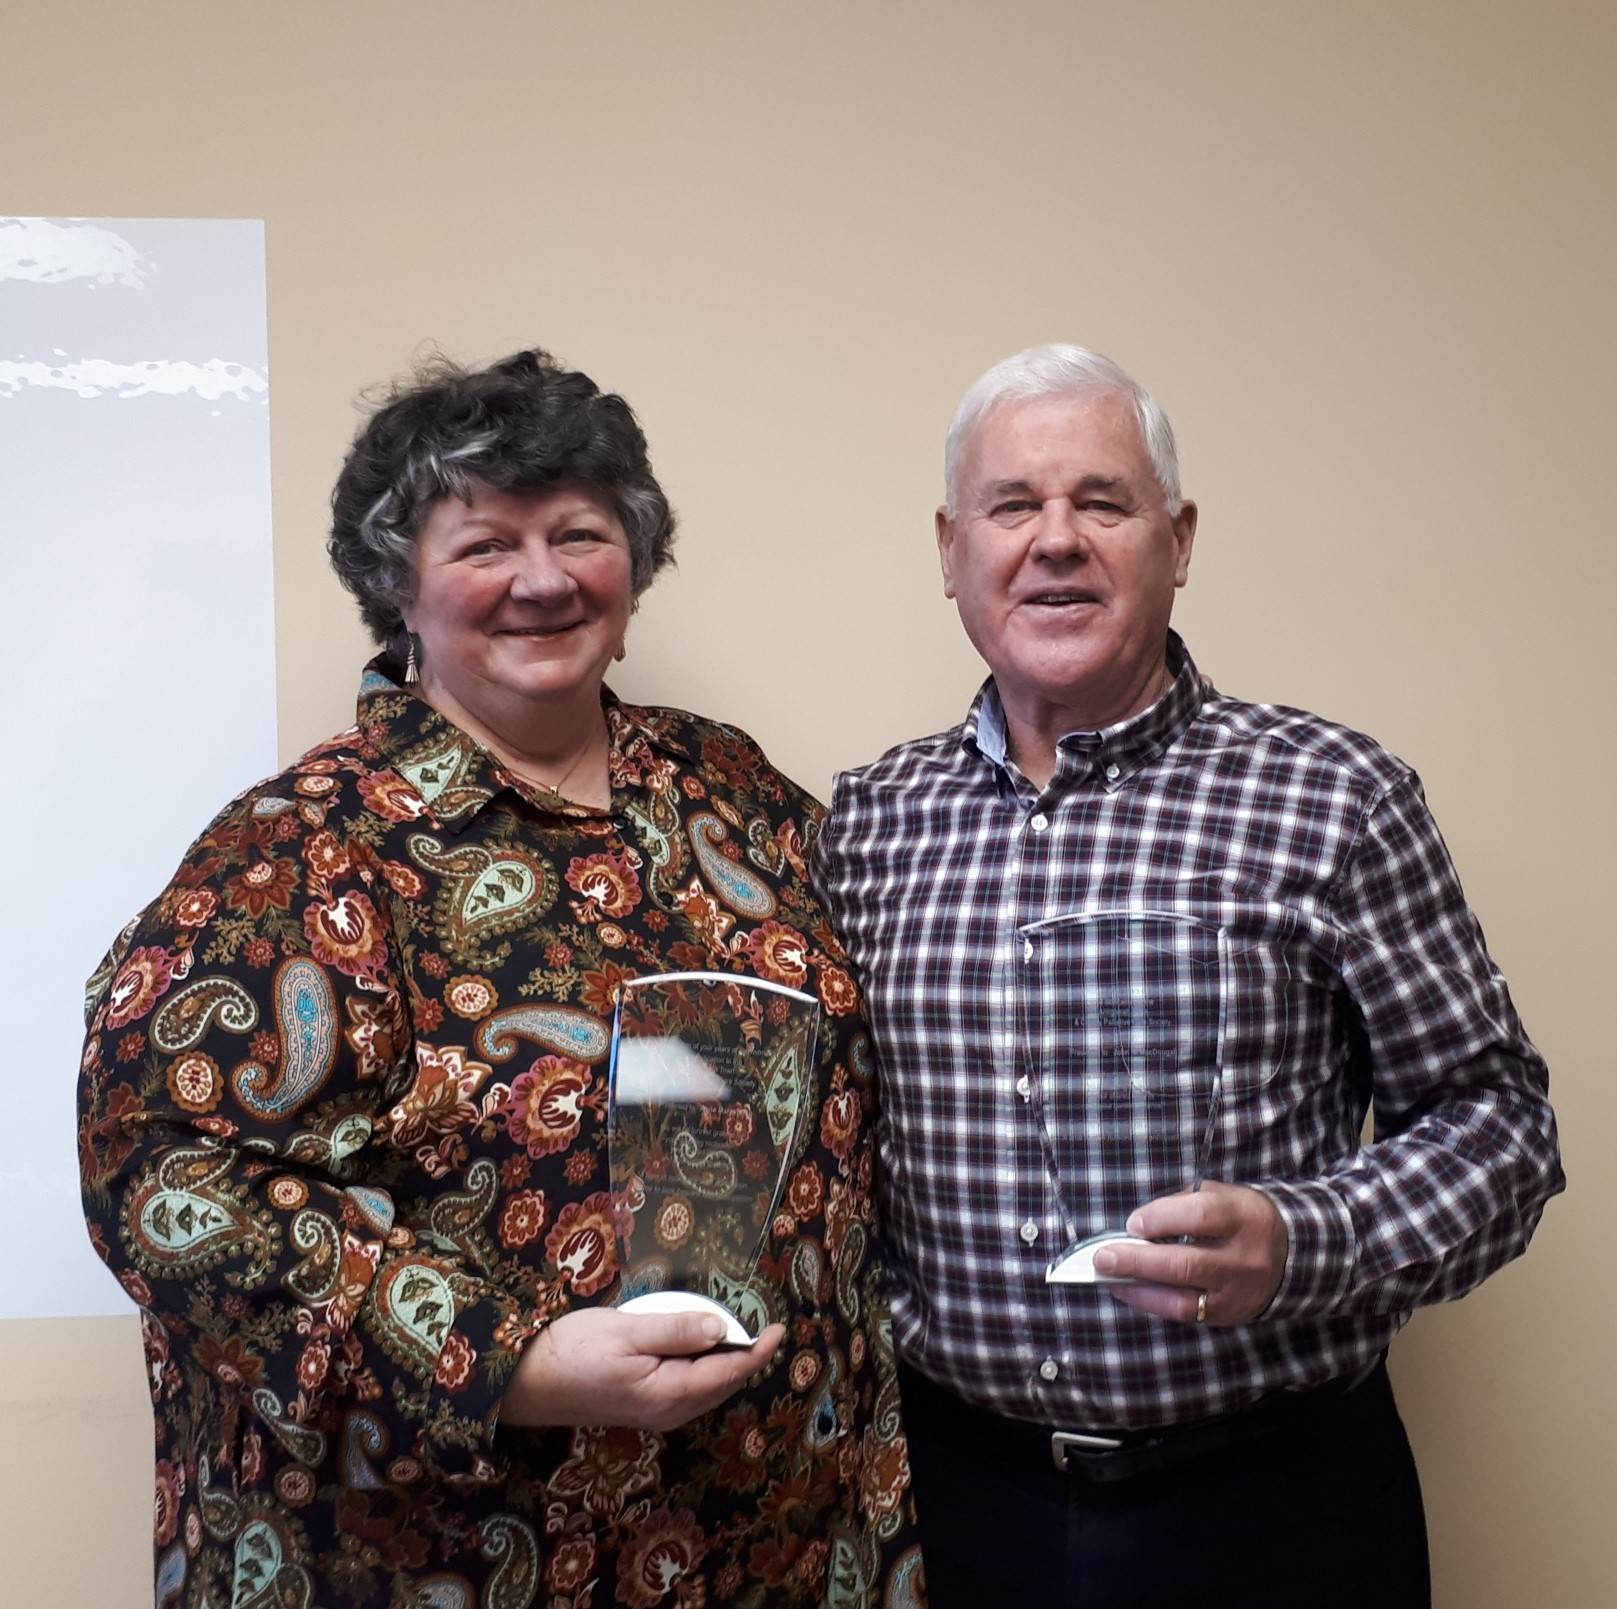 Plaques were awarded to John R. MacDougall and Anne Marie Long for their years of service, and in particular their determination in seeing the Palliative Care unit become a reality